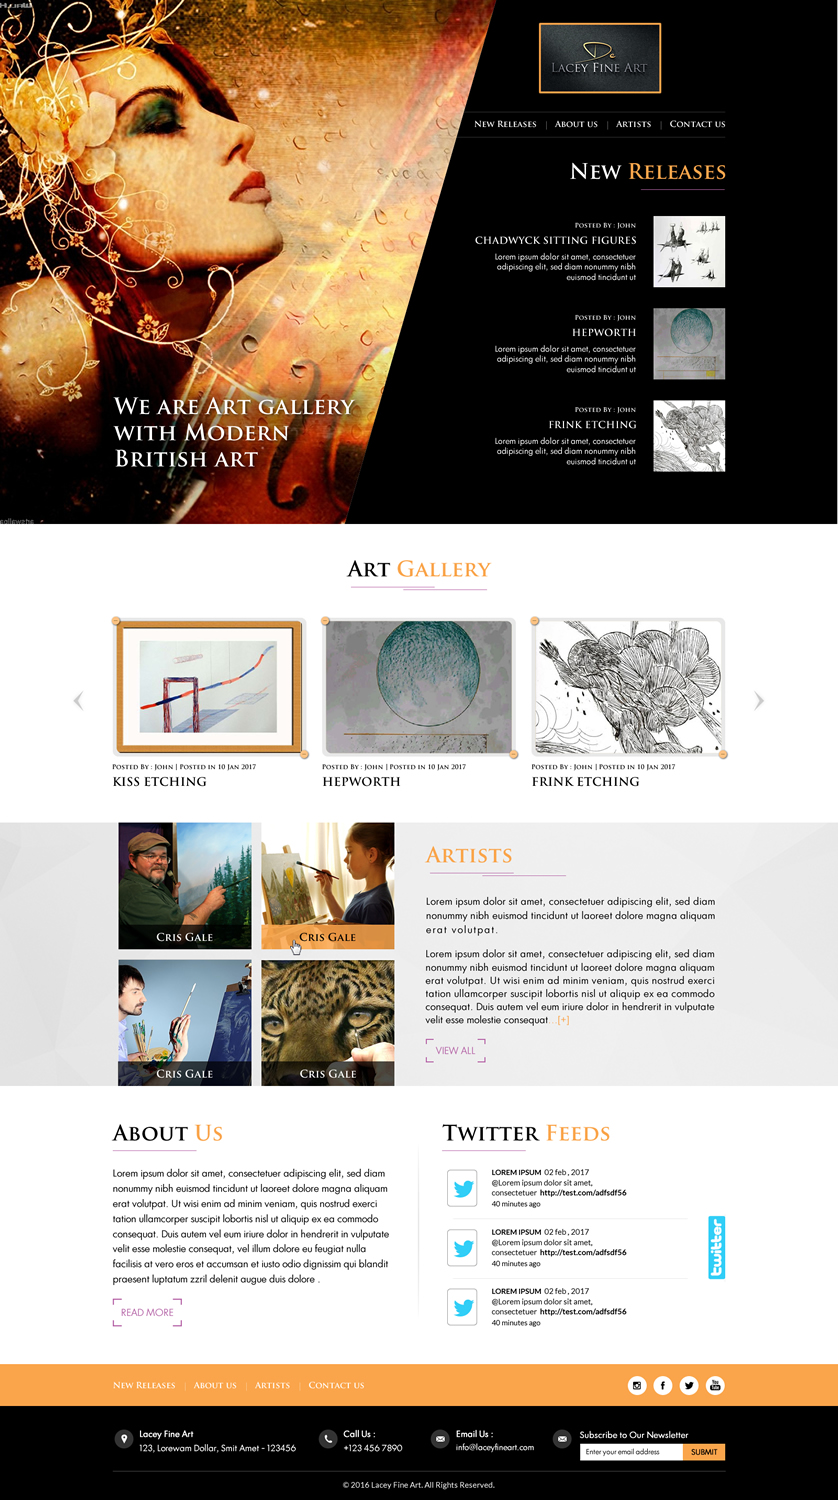 Elegant Serious Art Gallery Web Design For A Company By Sbss Design 13822676,Negative Space One Logo Design